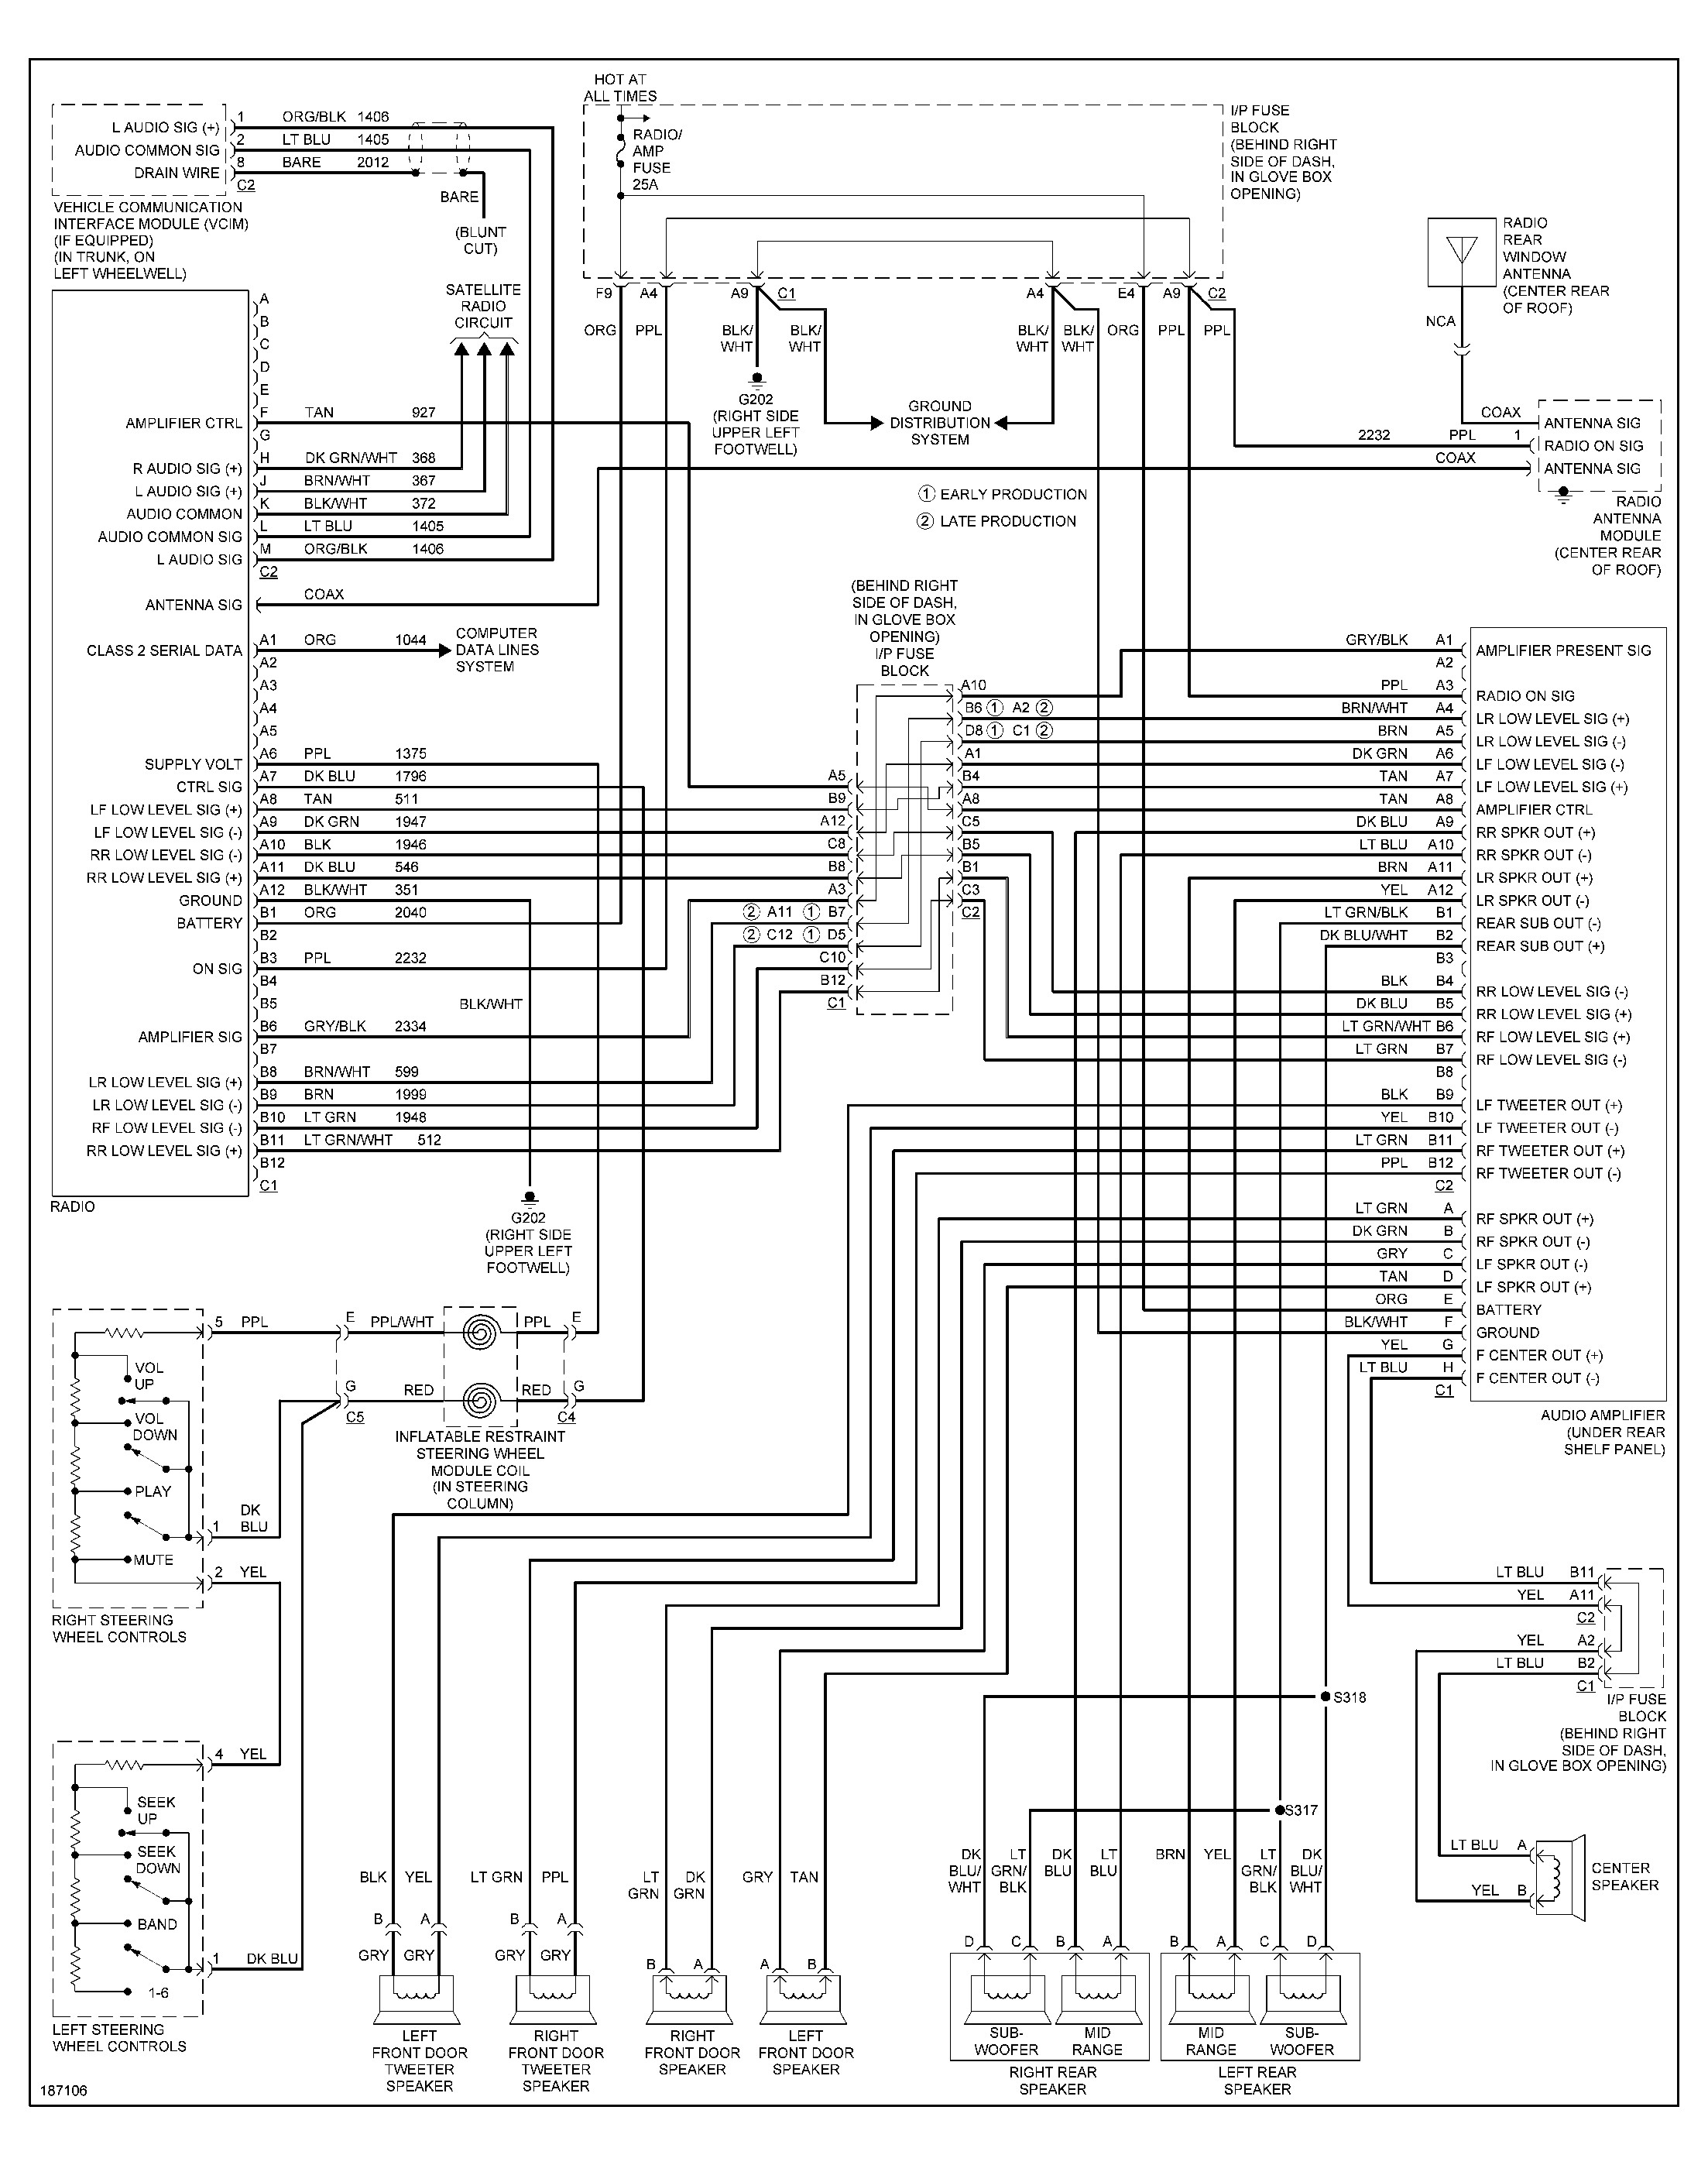 2002 Pontiac Grand Am Headlight Wiring Diagram